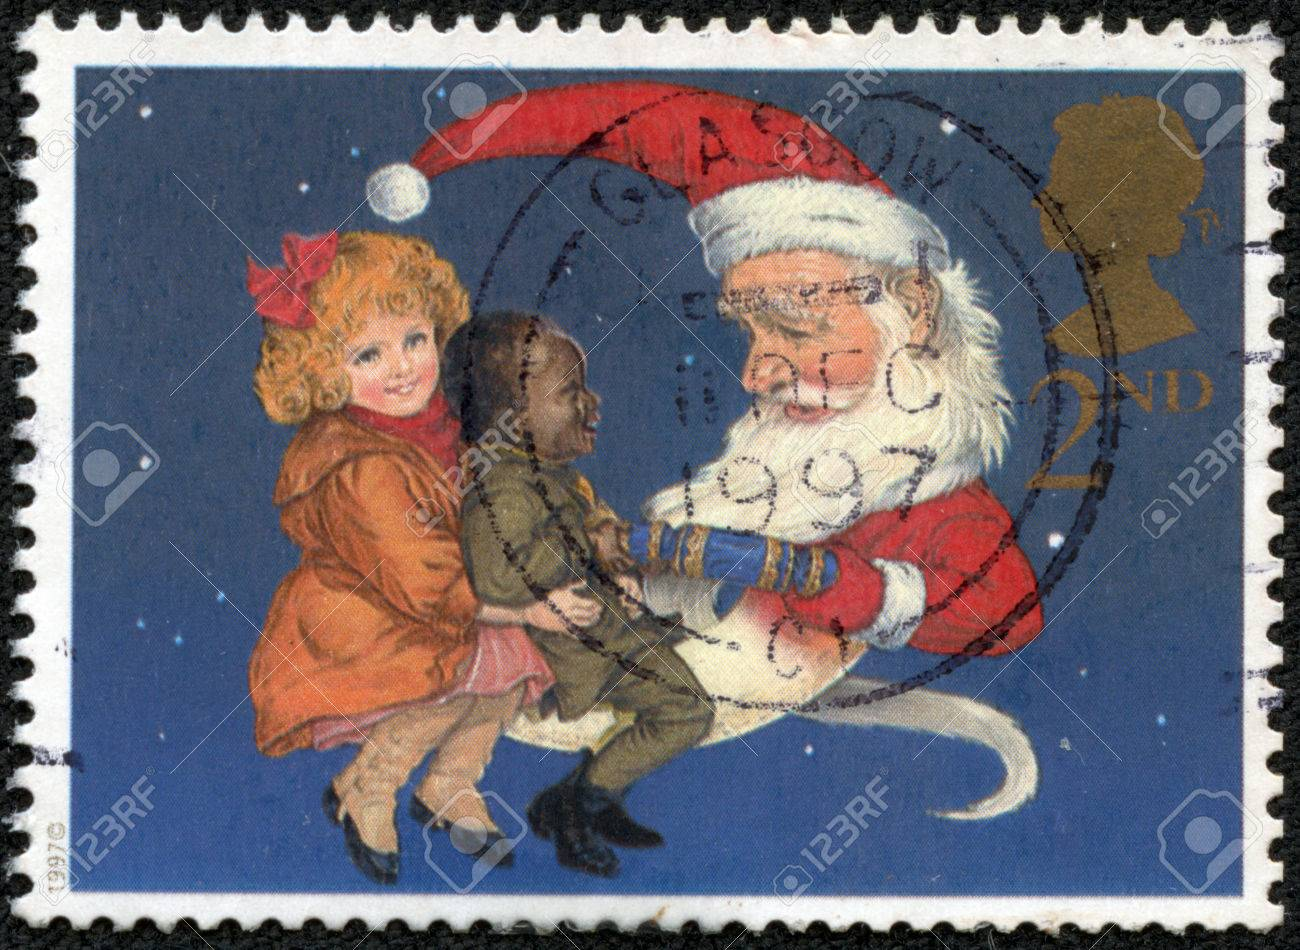 Awe Inspiring Great Britain Circa 1997 A Stamp Printed In The Great Britain Easy Diy Christmas Decorations Tissureus